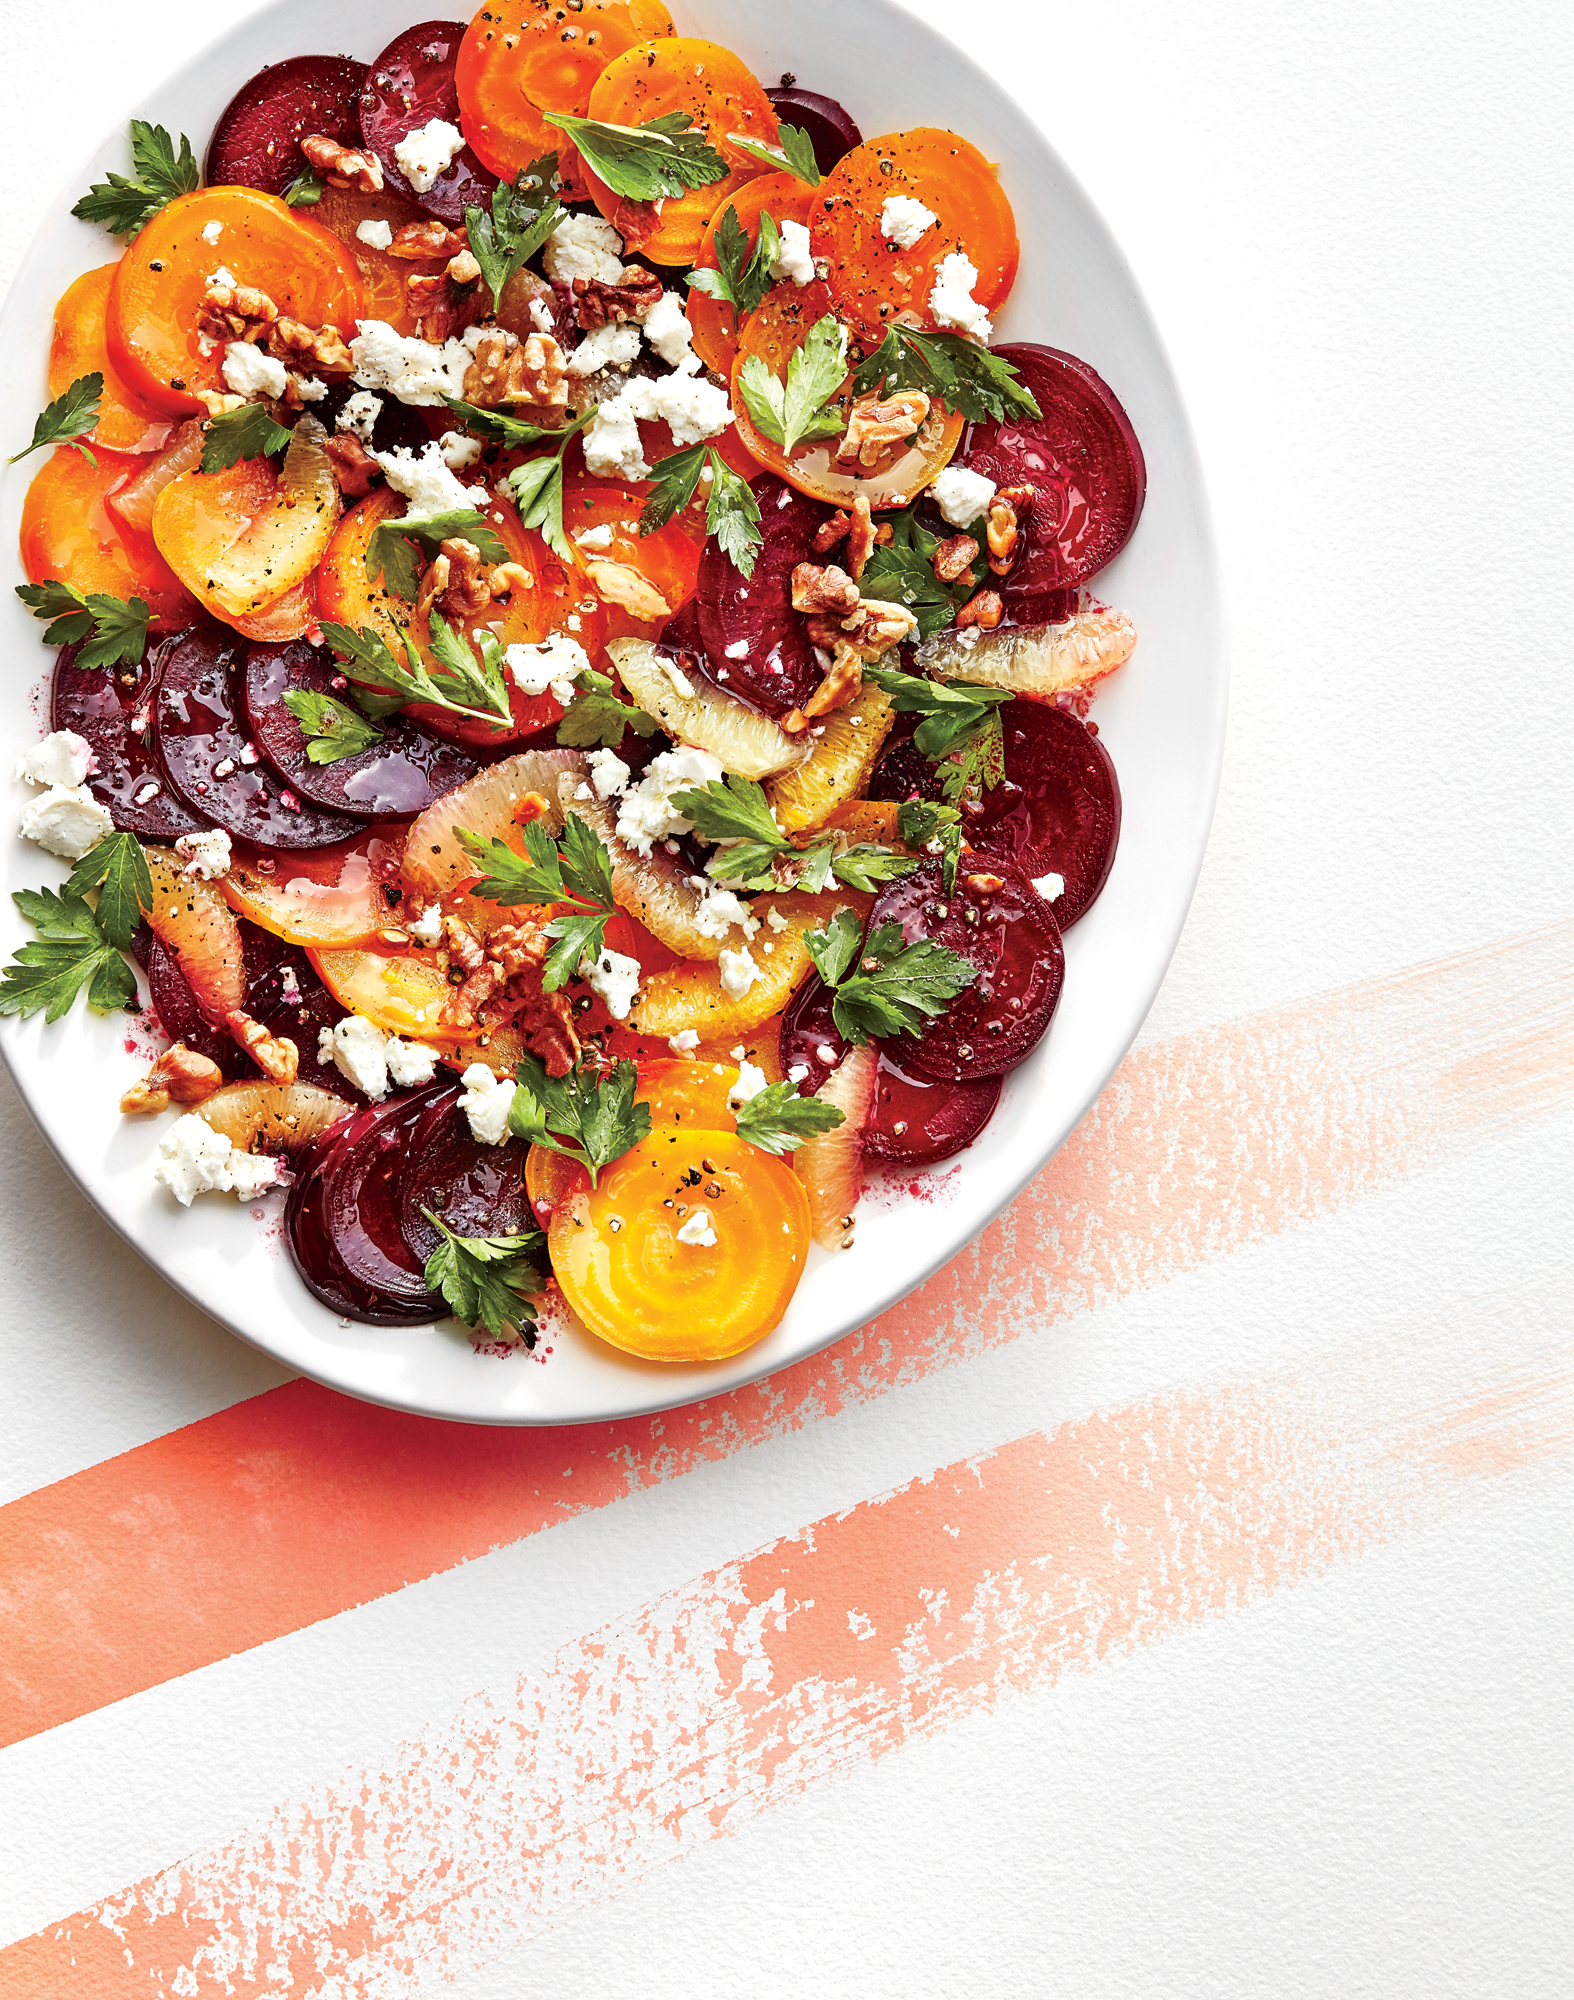 Beet, Lemon, and Walnut Salad